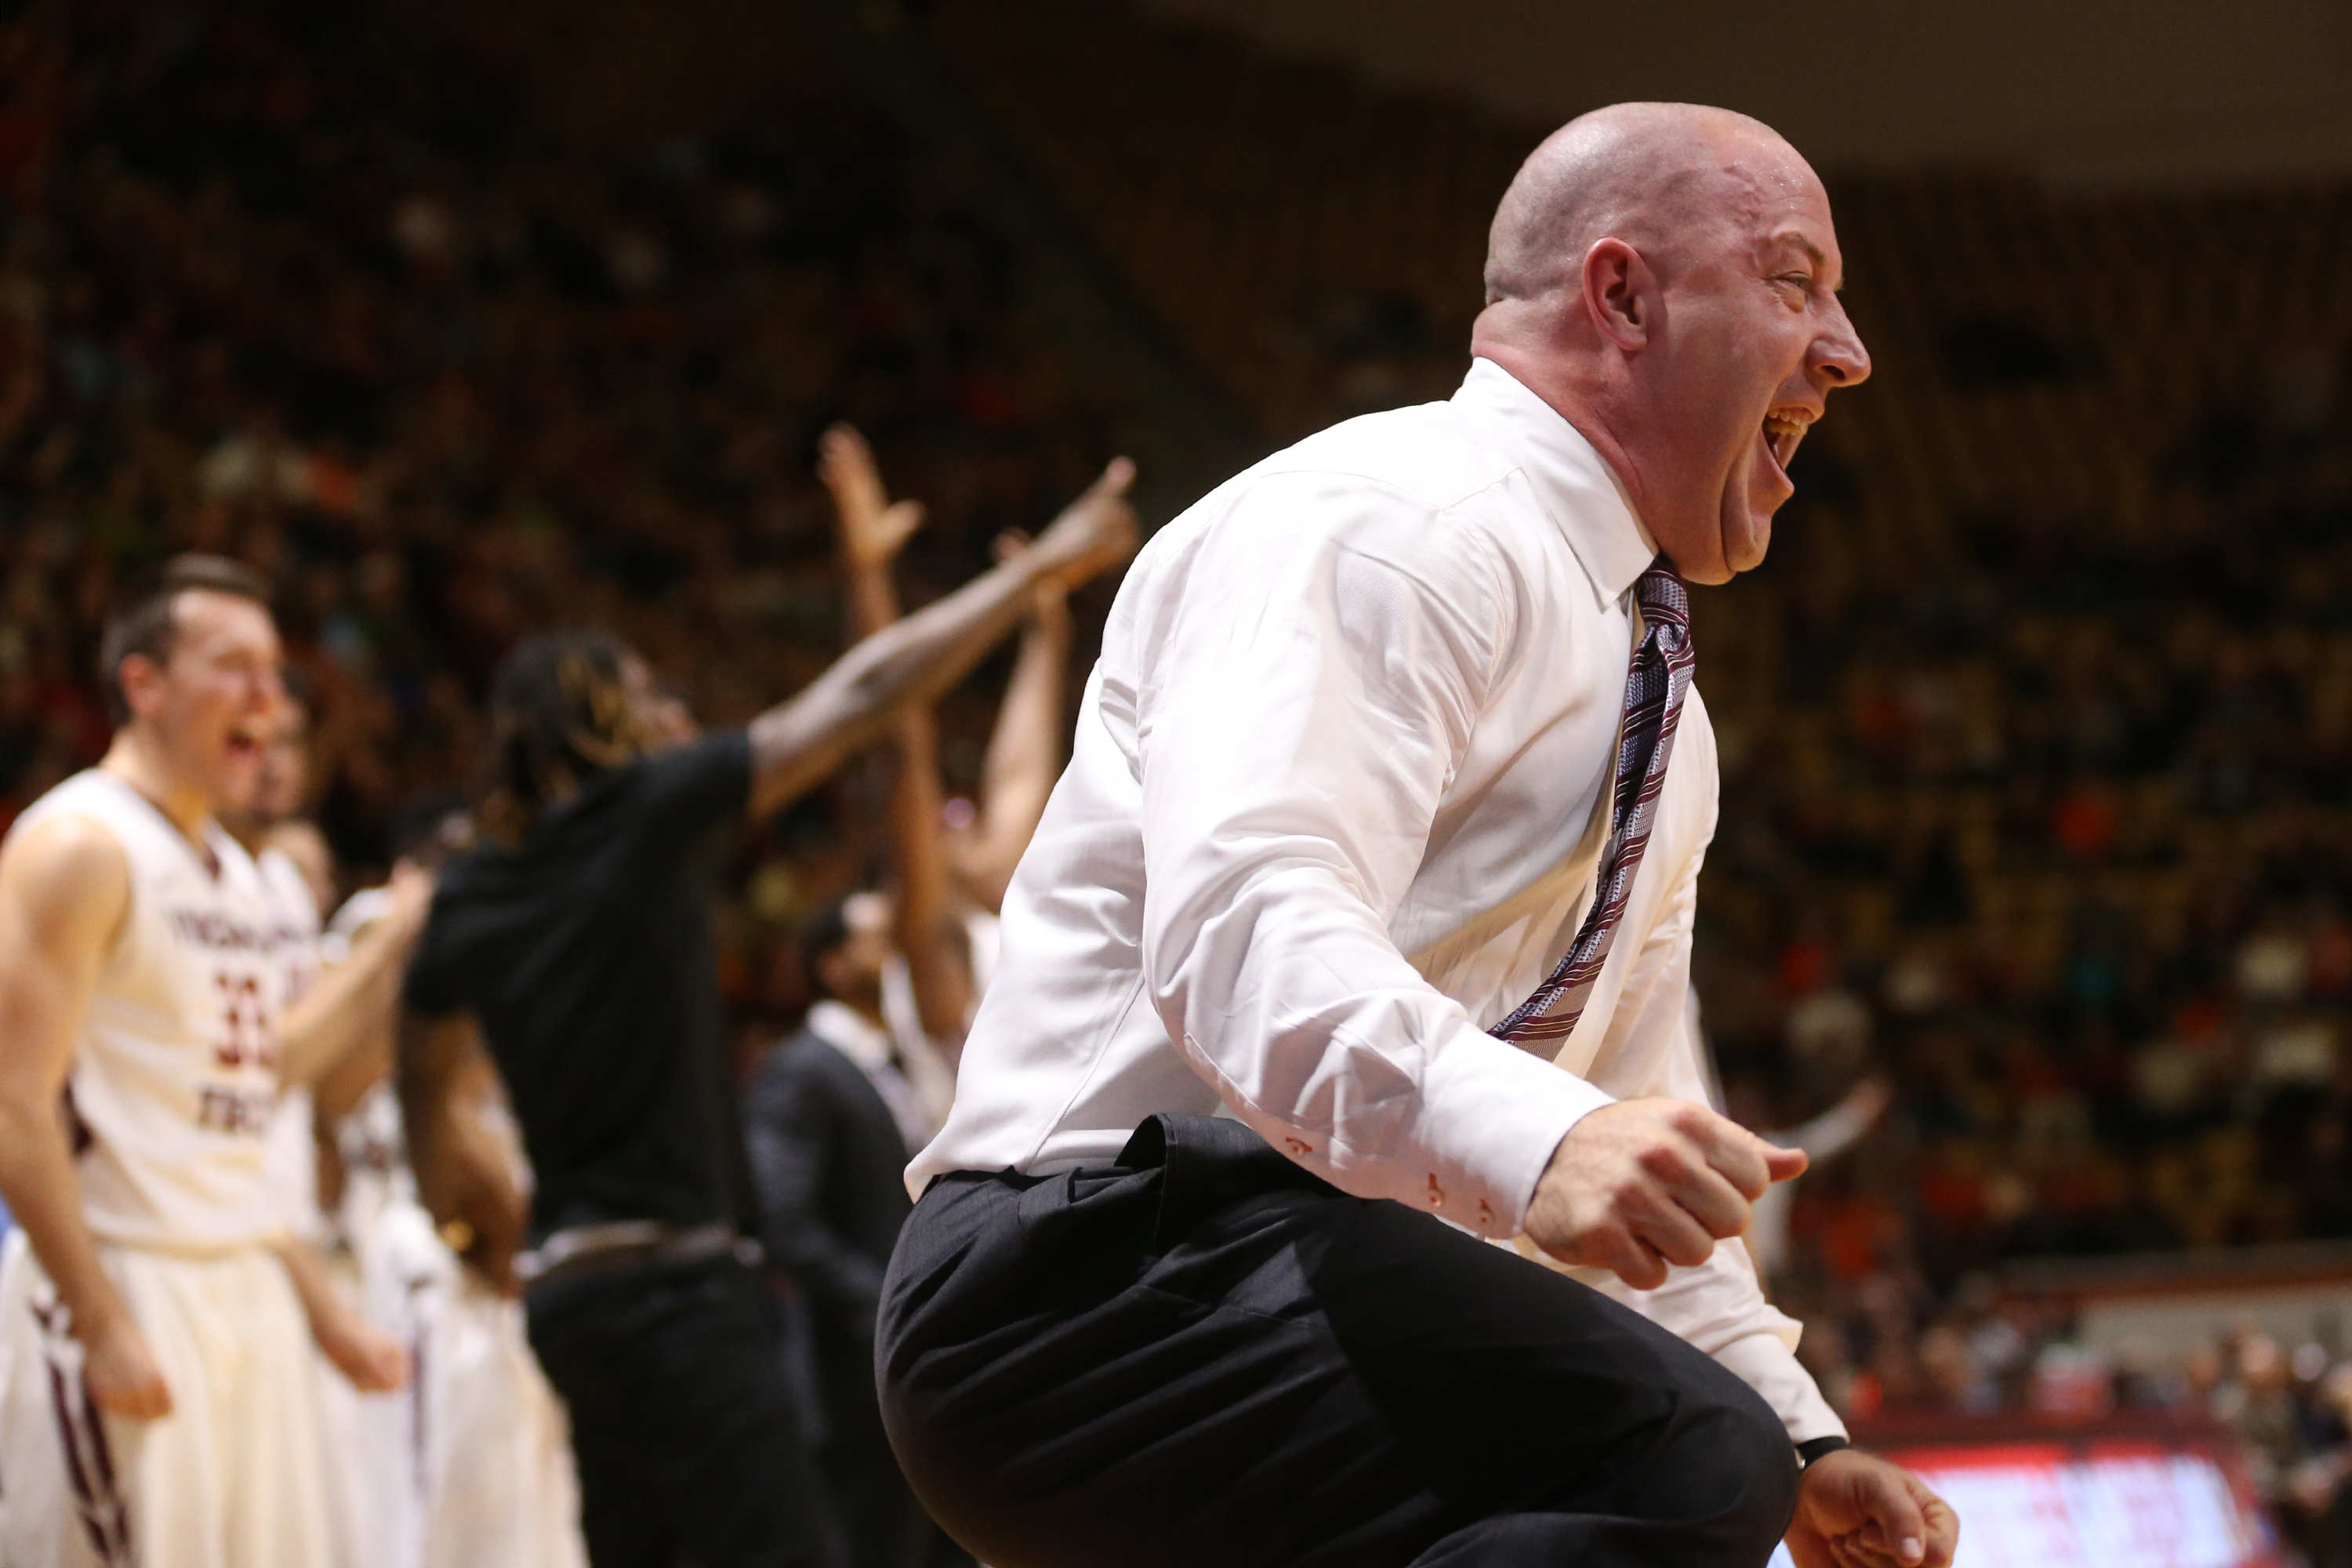 Virginia Tech head coach Buzz Williams celebrates a play in the first half of an NCAA college basketball game against Virginia, Monday, Jan. 4, 2016, in Blacksburg, Va. (Matt Gentry/The Roanoke Times via AP) LOCAL STATIONS OUT; LOCAL INTERNET OUT; LOCAL P